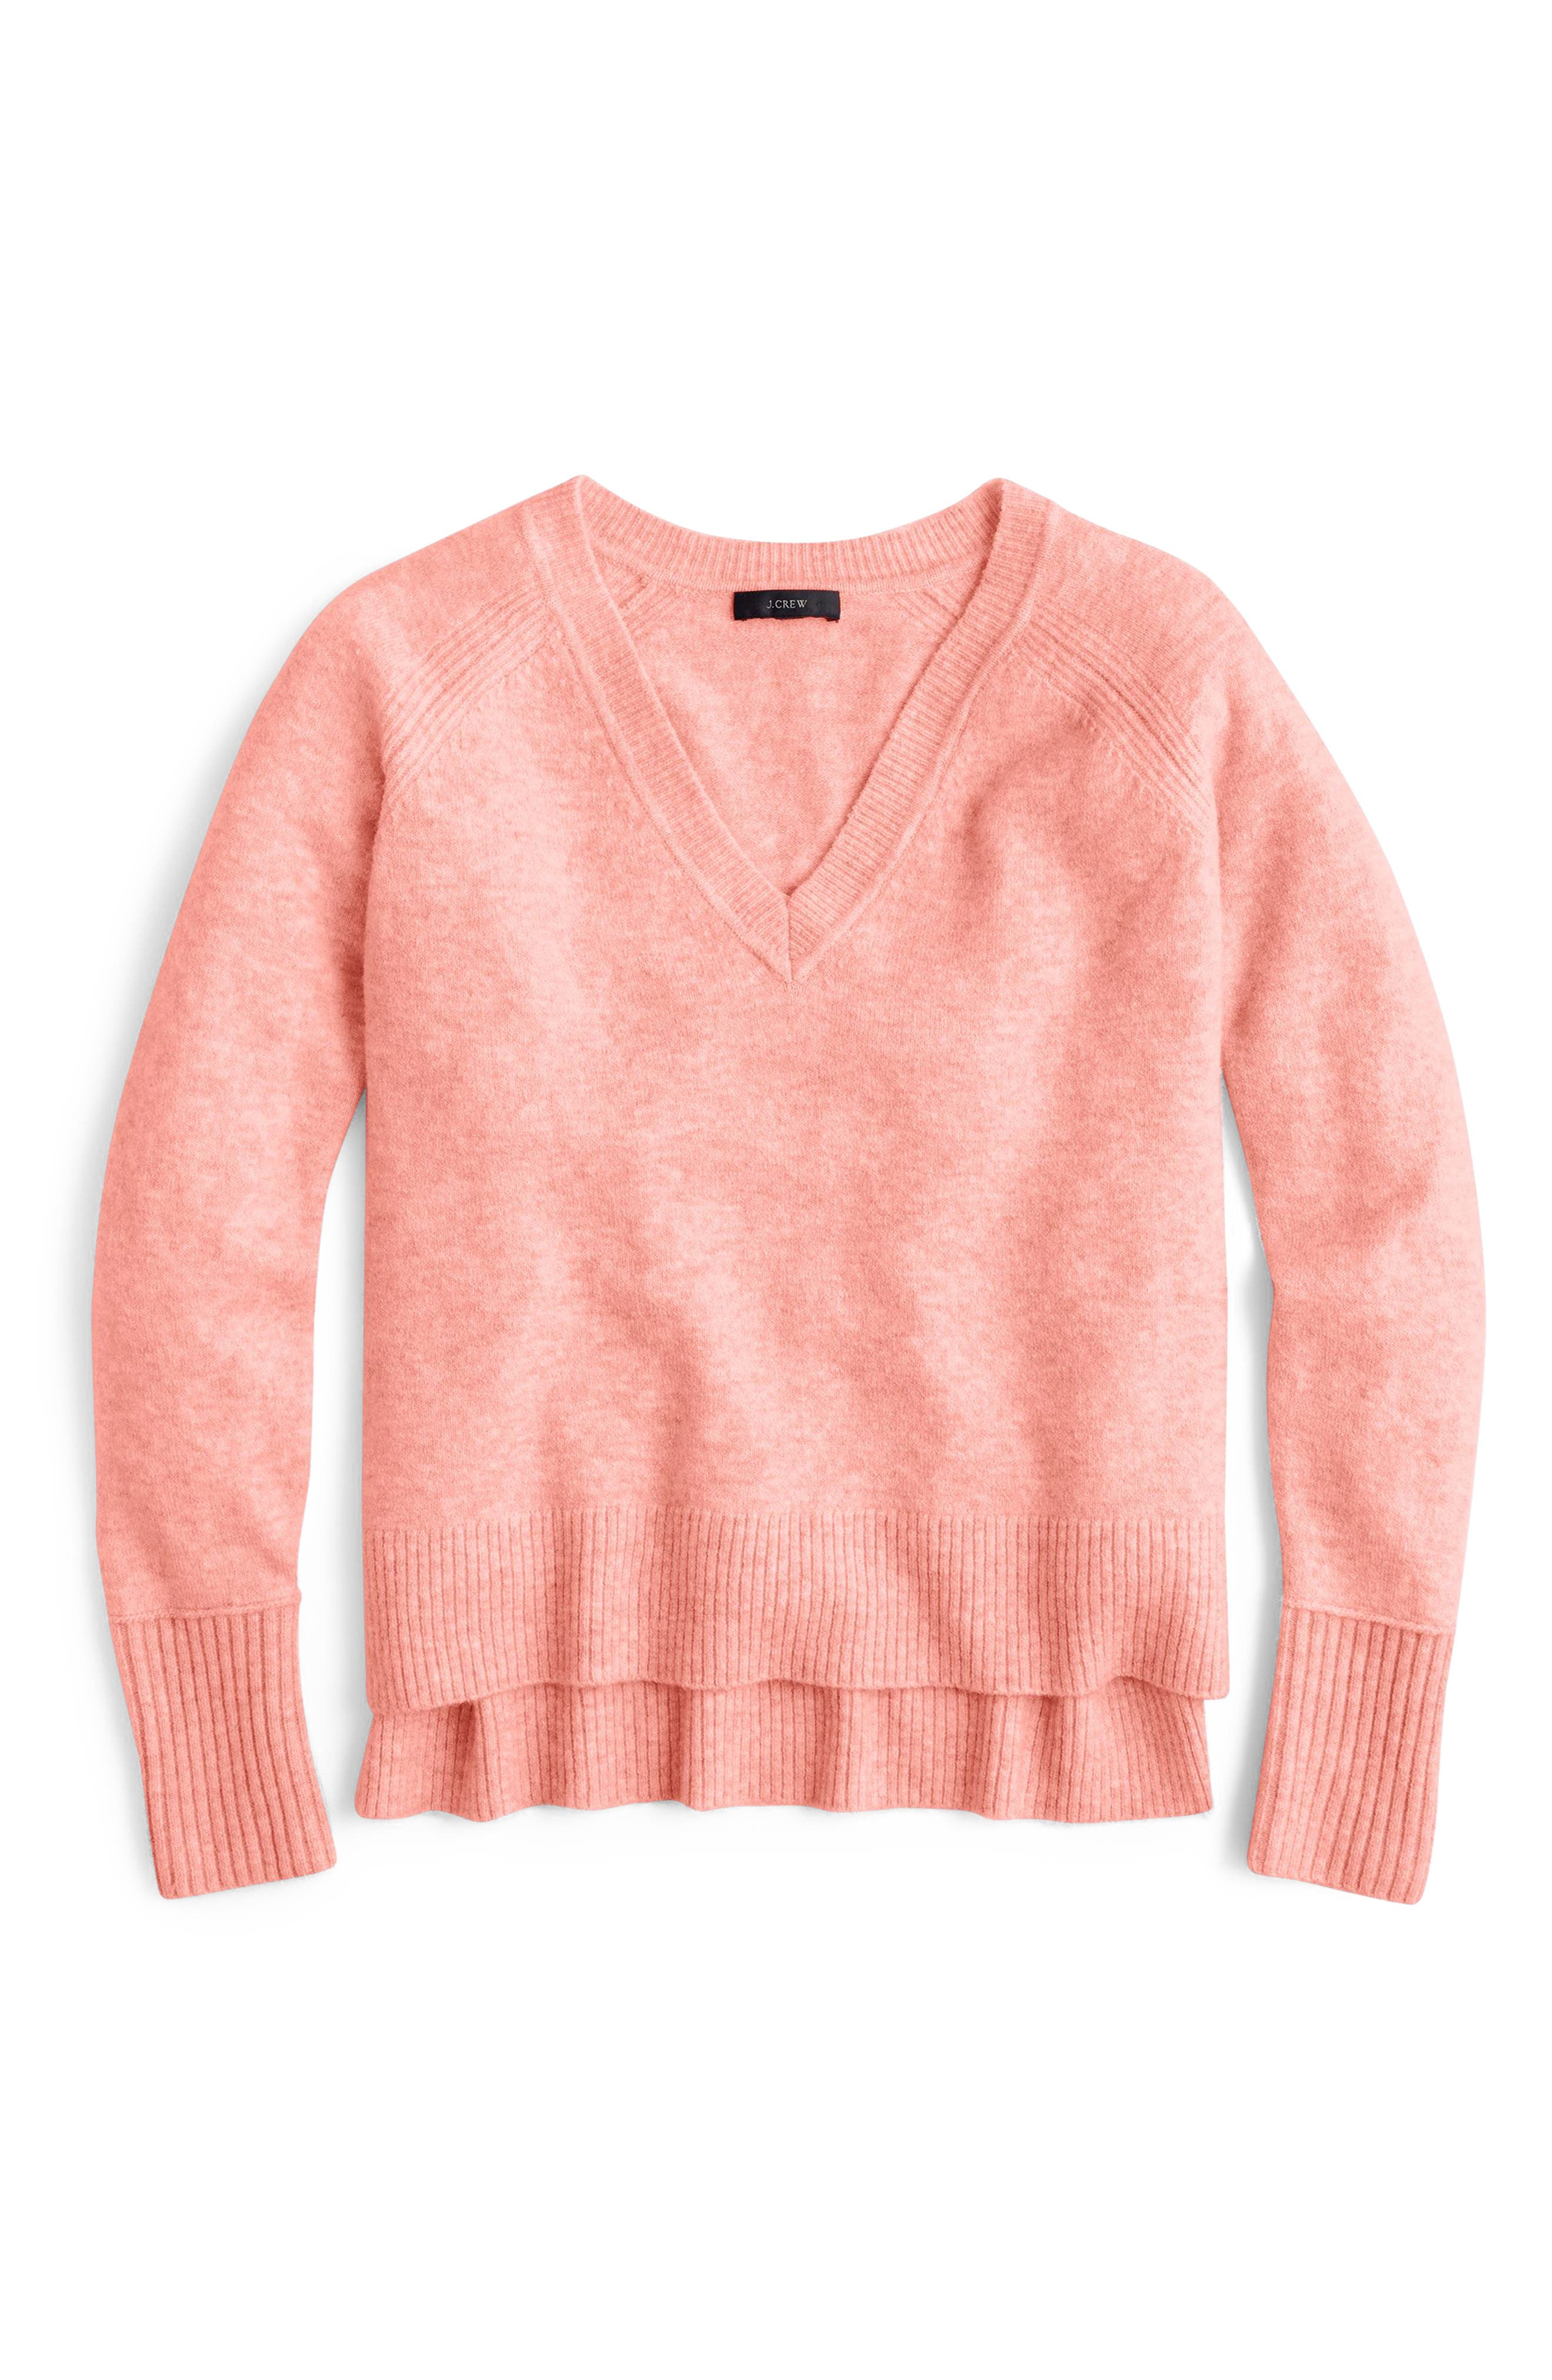 Supersoft Yarn V-Neck Sweater,                             Alternate thumbnail 19, color,